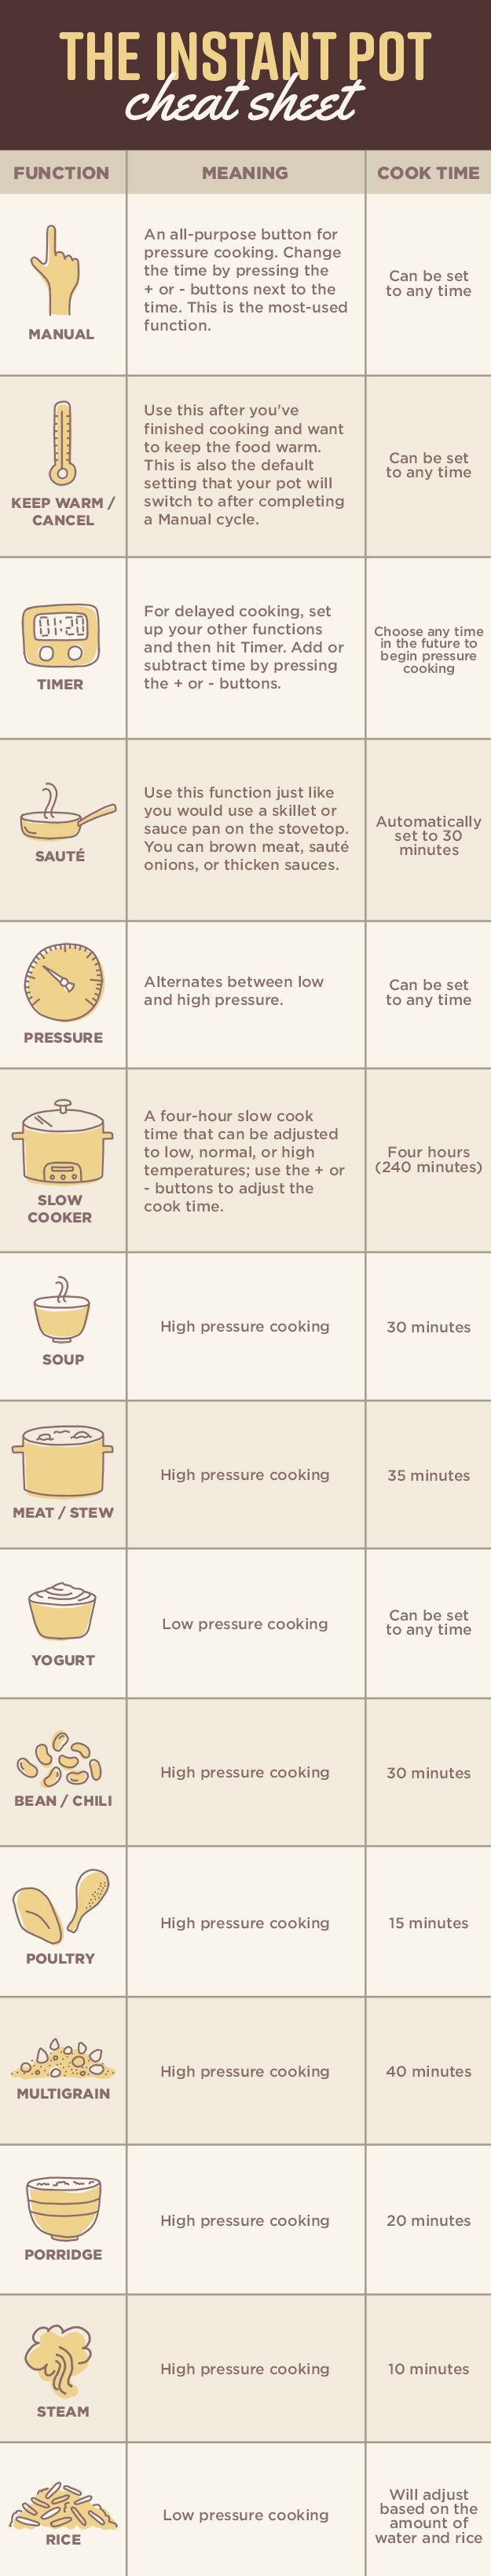 Eloquent image with regard to instant pot cheat sheet printable